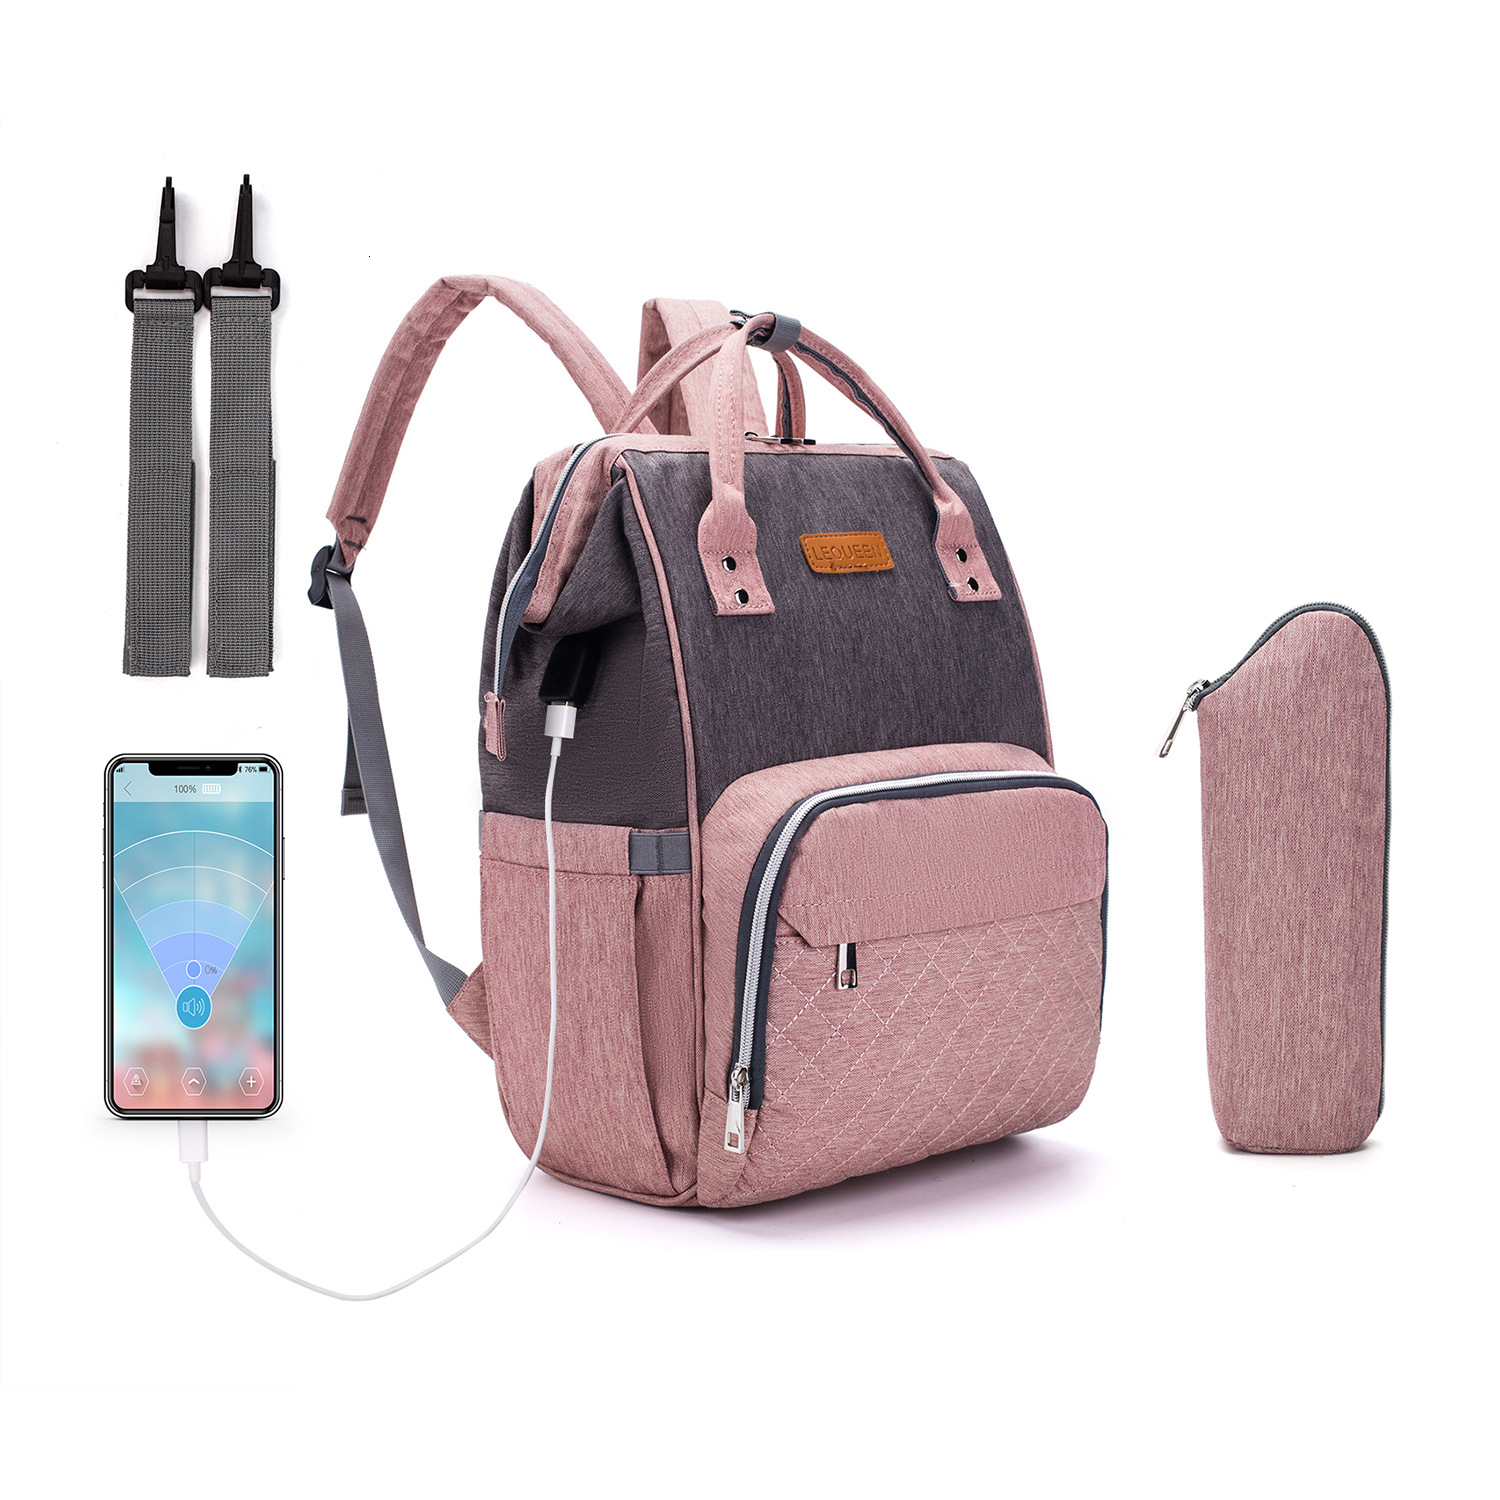 USB Diaper Bag Baby Mummy Maternity Bag For Stroller Diaper Bagpack Waterproof Nappy Backpack Nursing Bags With Hooks